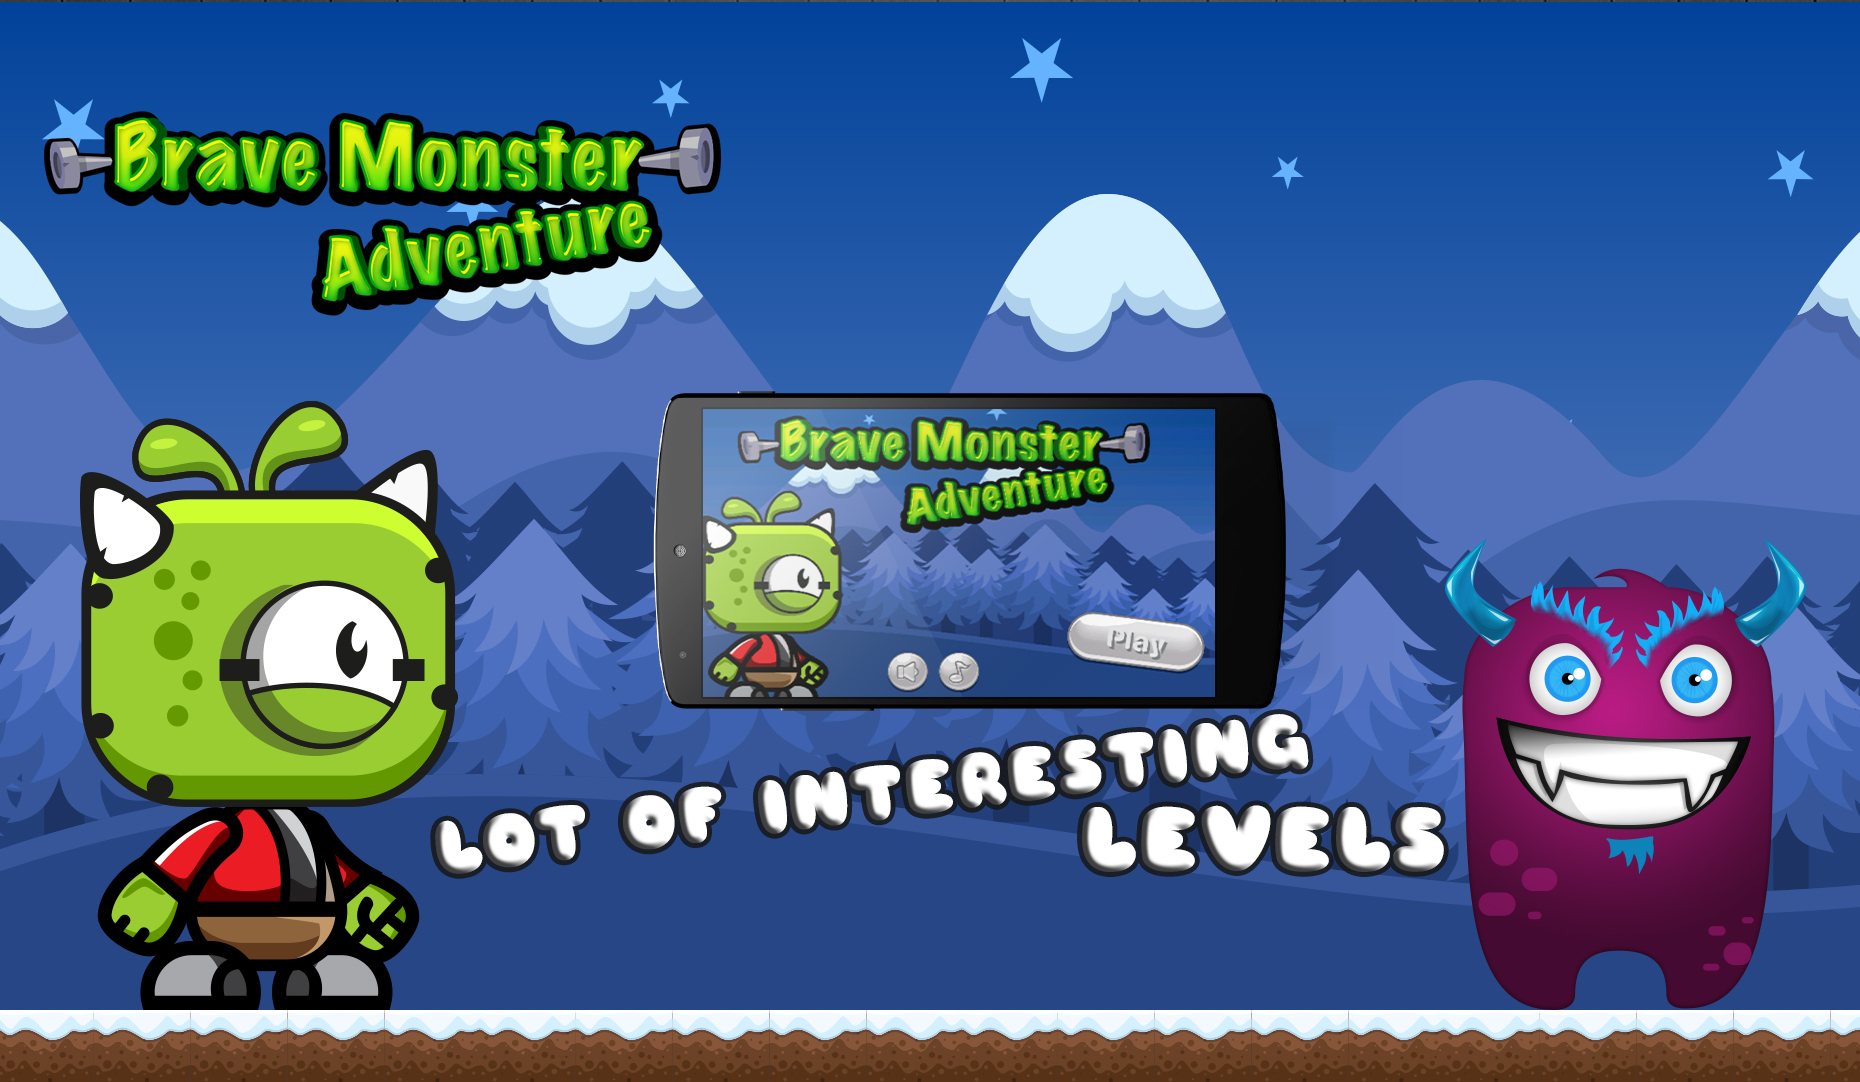 Brave Monster Adventure